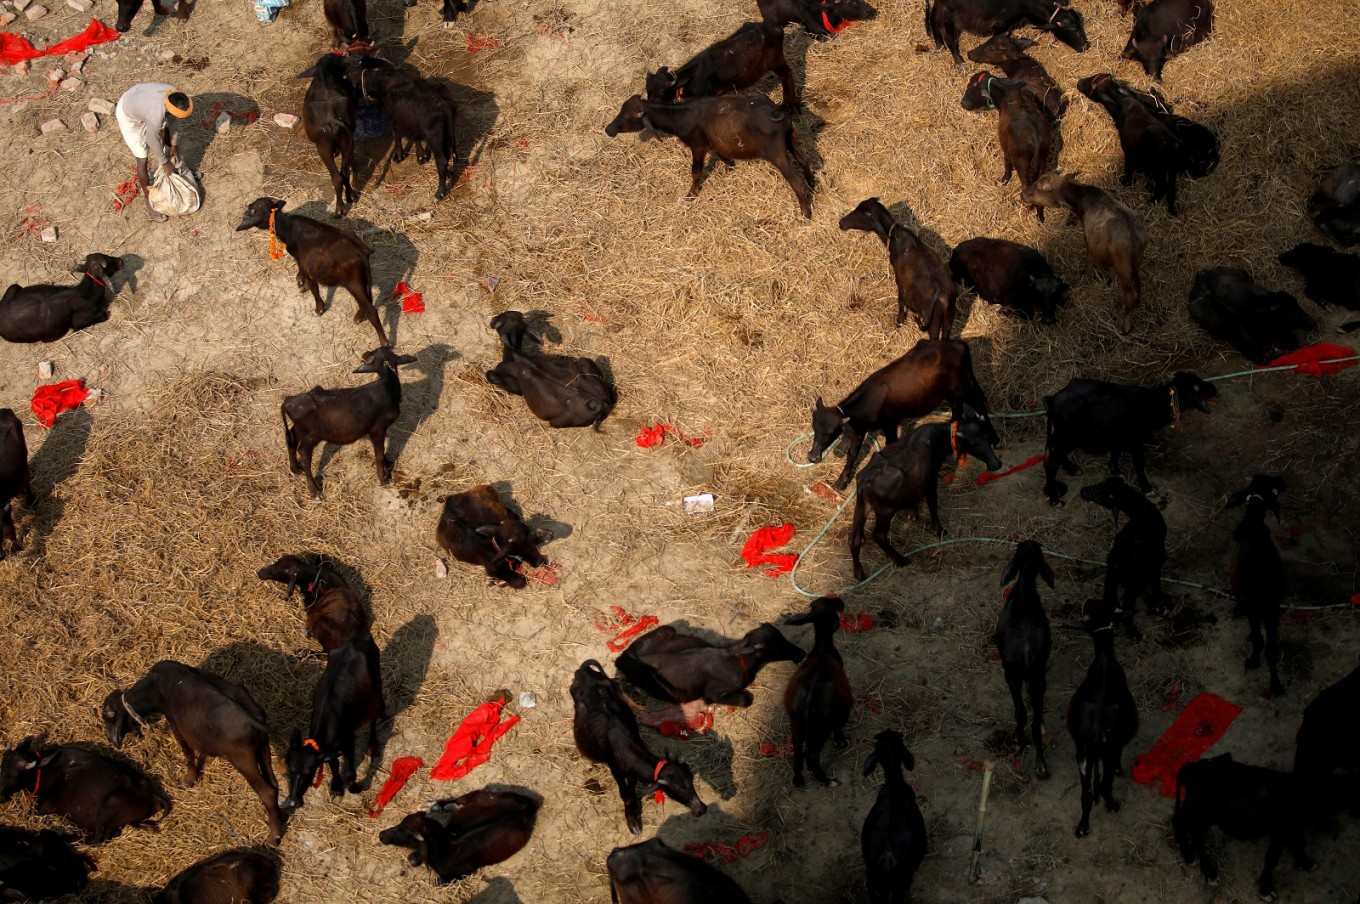 Thousands of animals sacrificed in Nepal Hindu ritual amid outcry